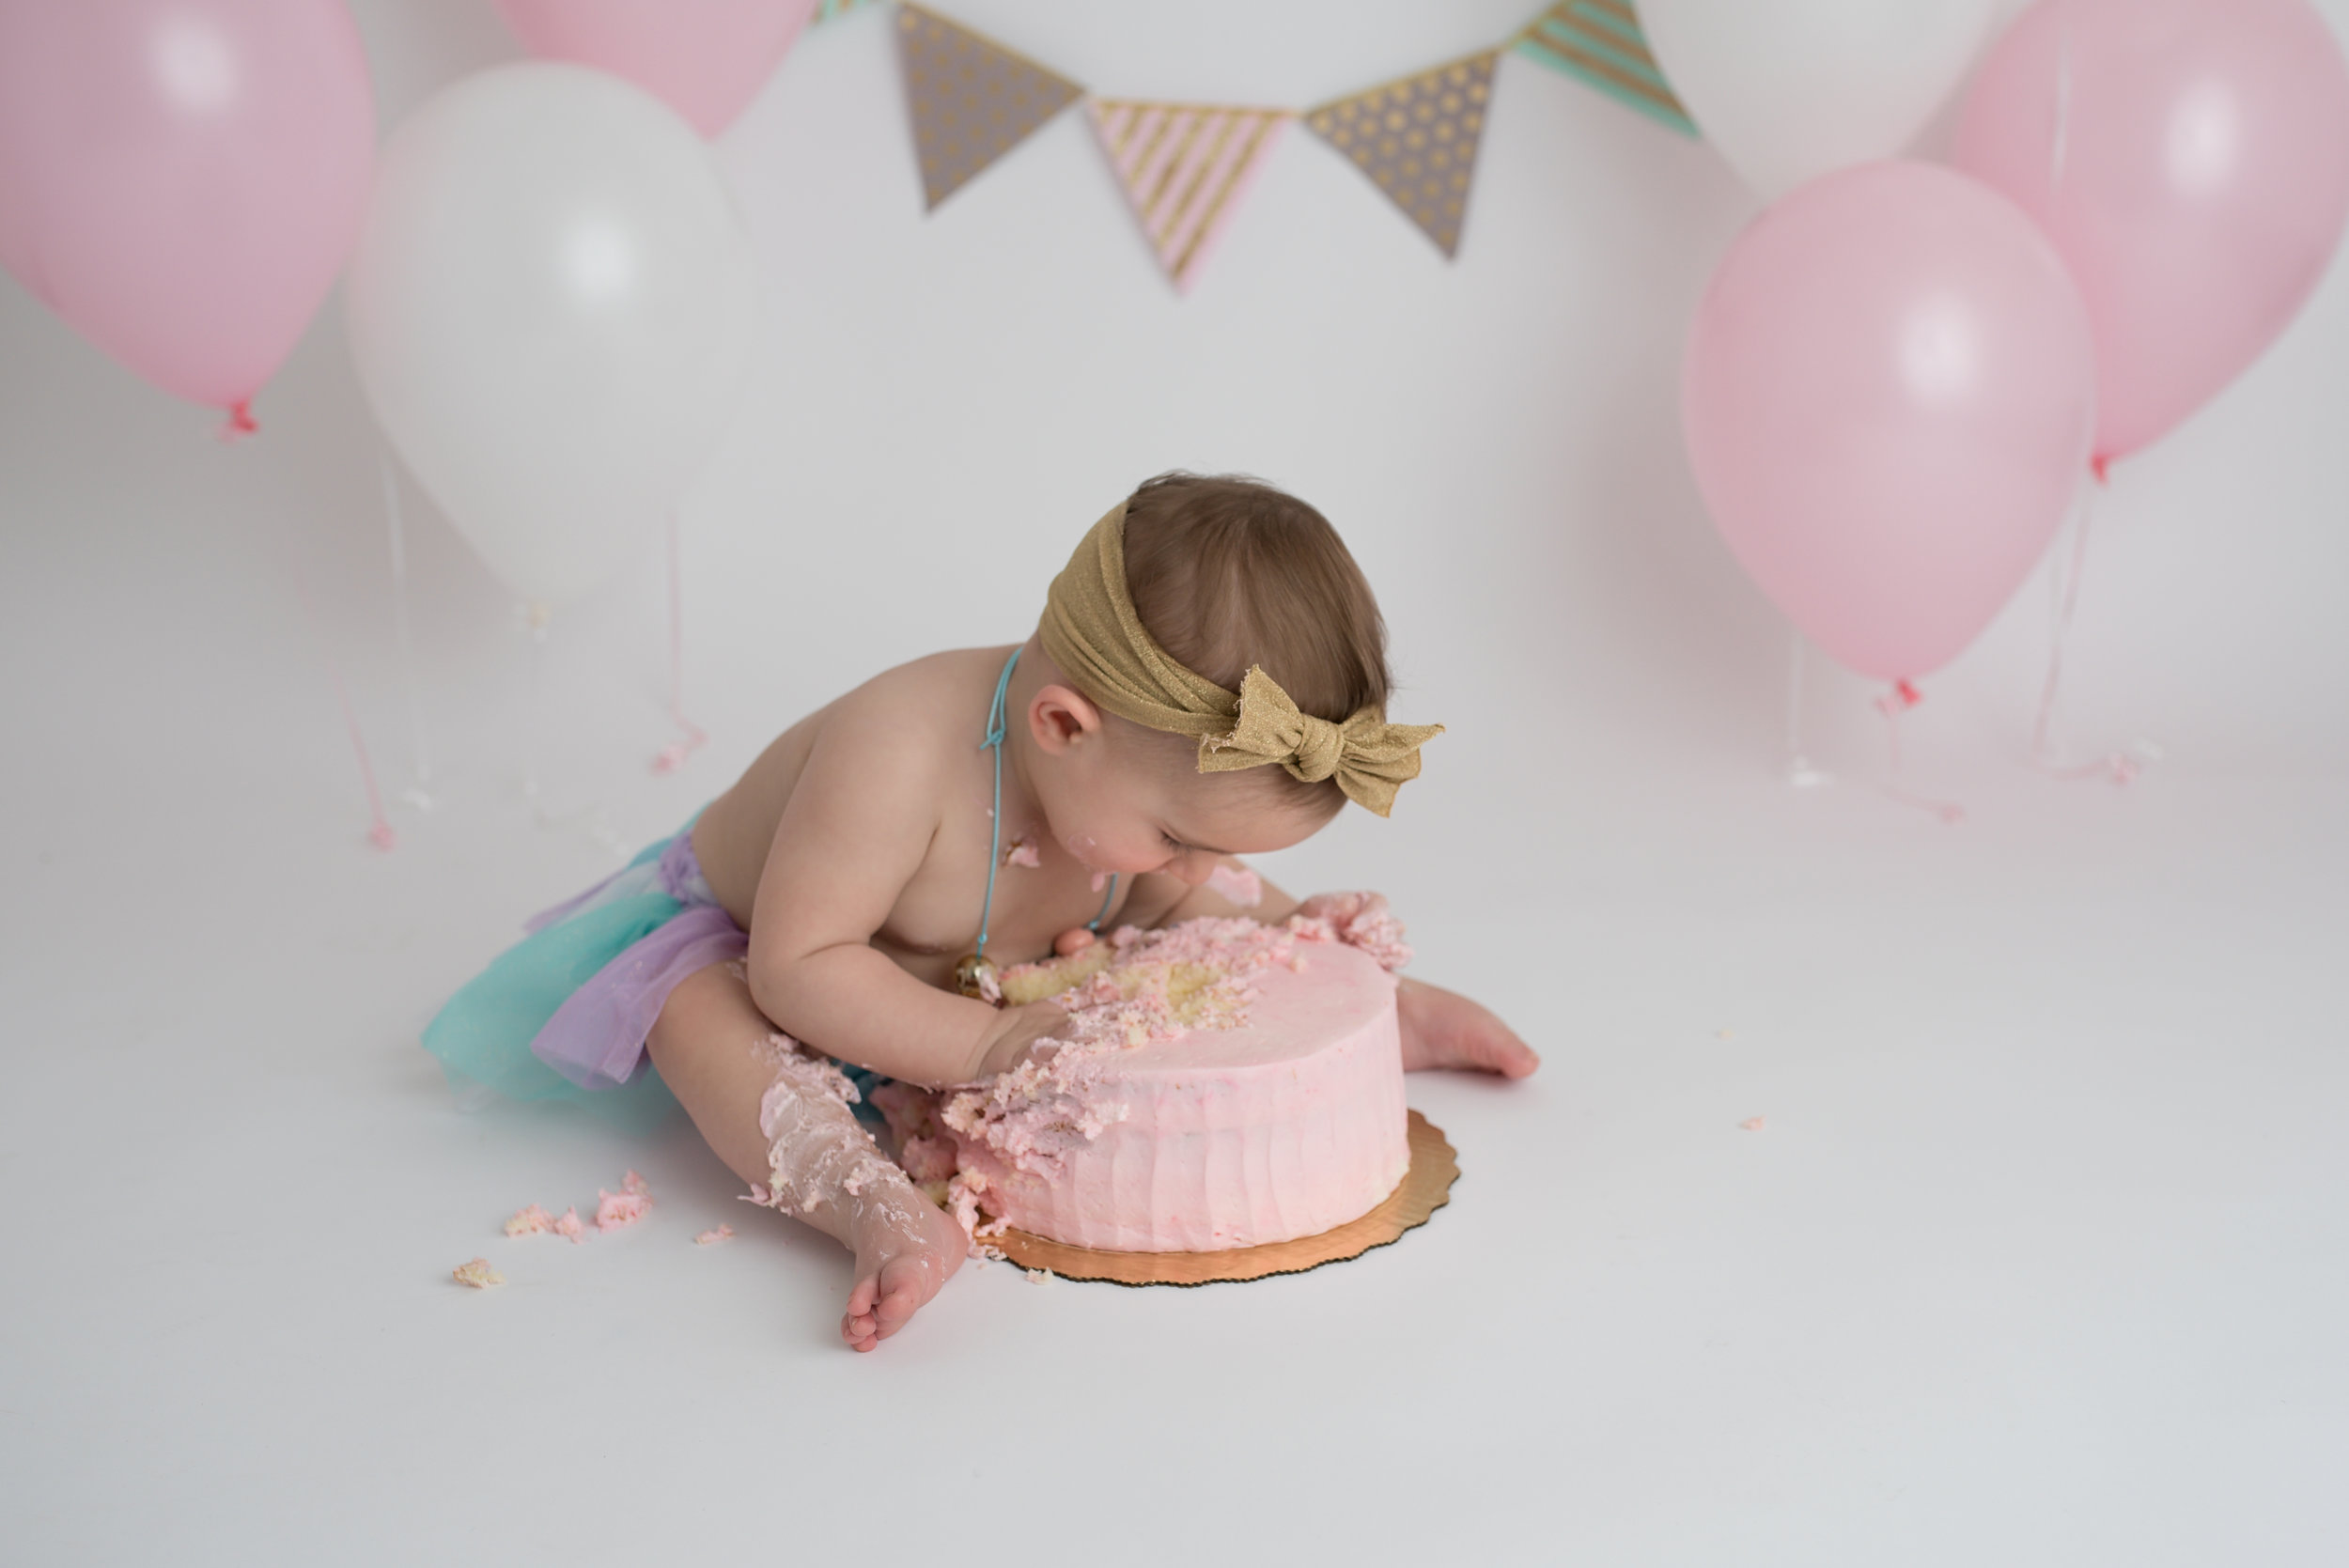 Charleston-Cake-Smash-Photographer-FSP_0995 copy.jpg